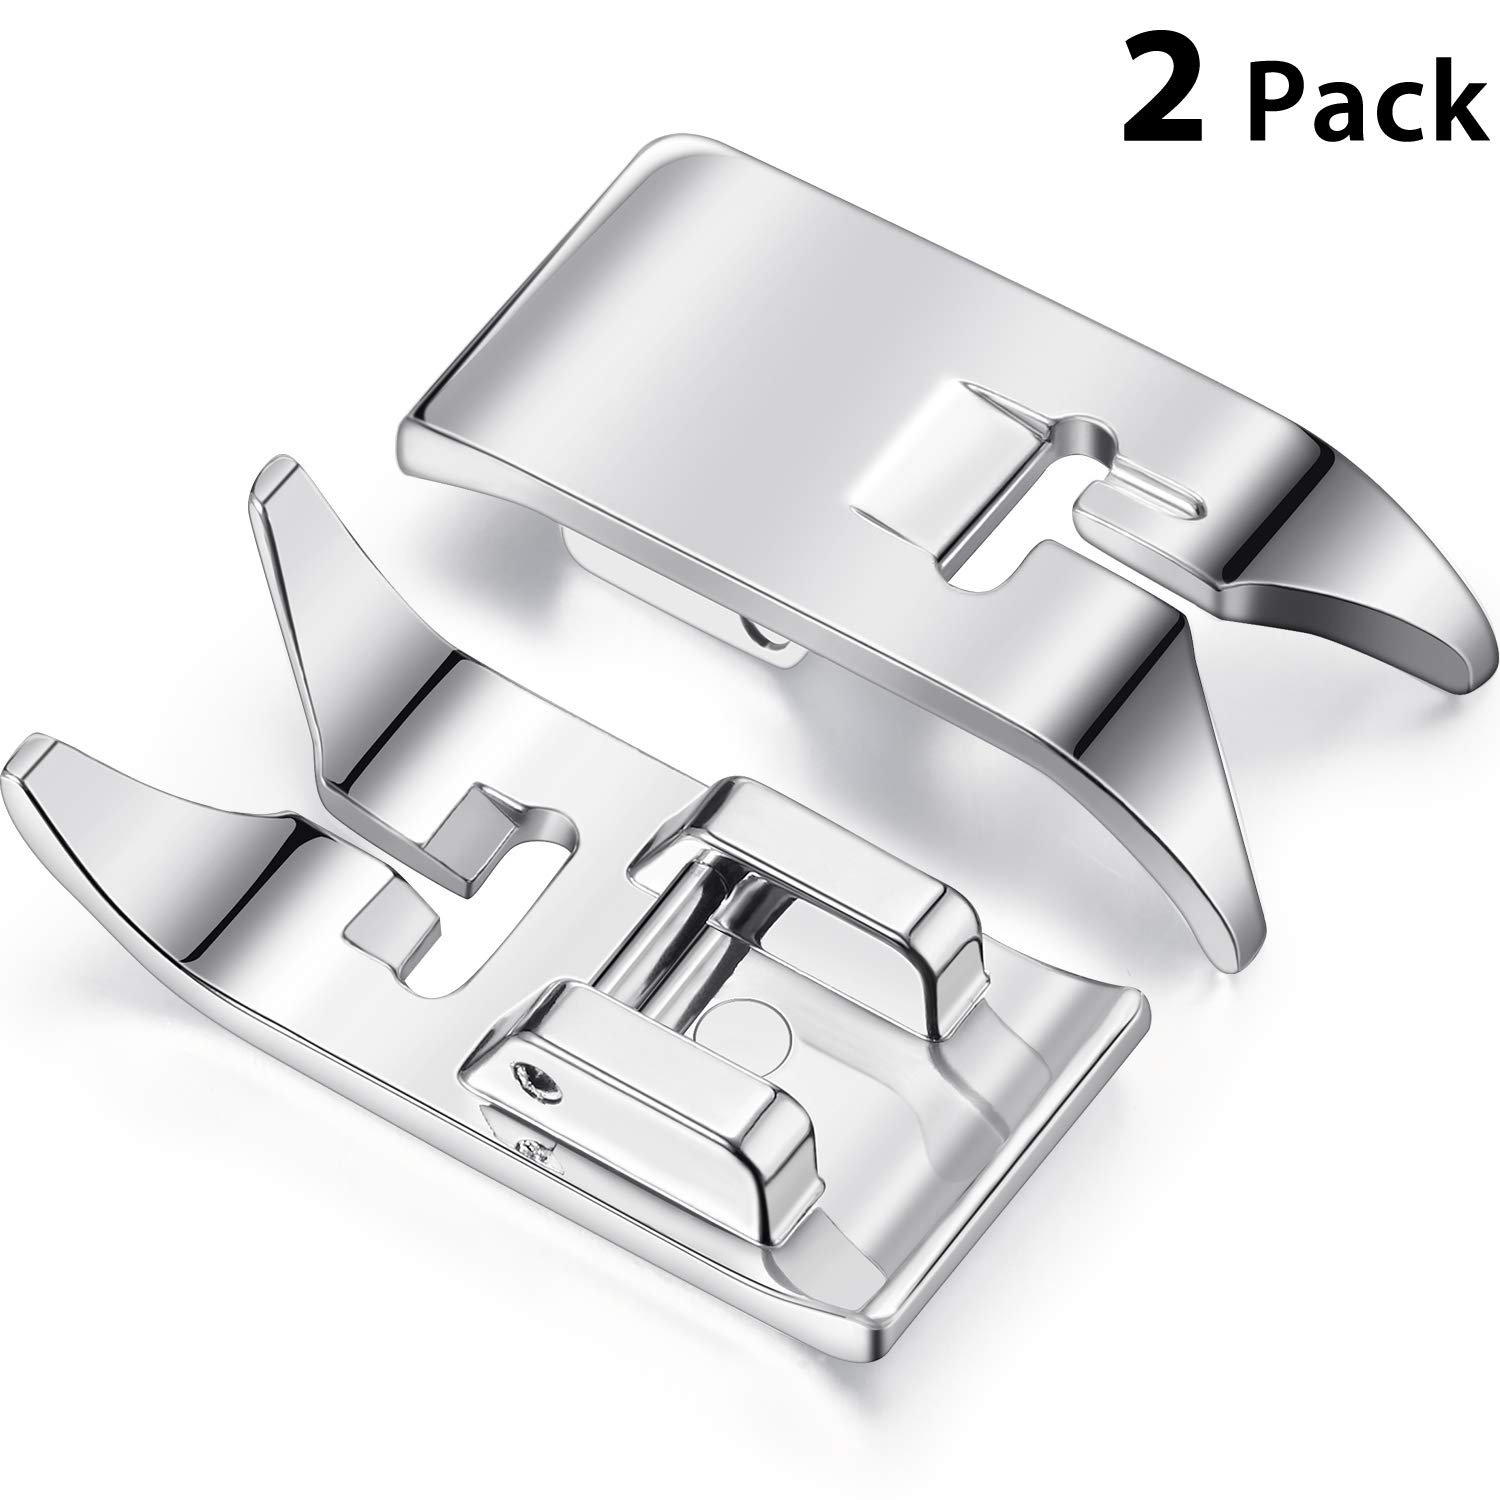 Brother Straight Stitch Foot Presser Foot,Fit Singer Toyota Etc Domestic Sewing Machines Janome TFBOY Low Shank Zig Zag